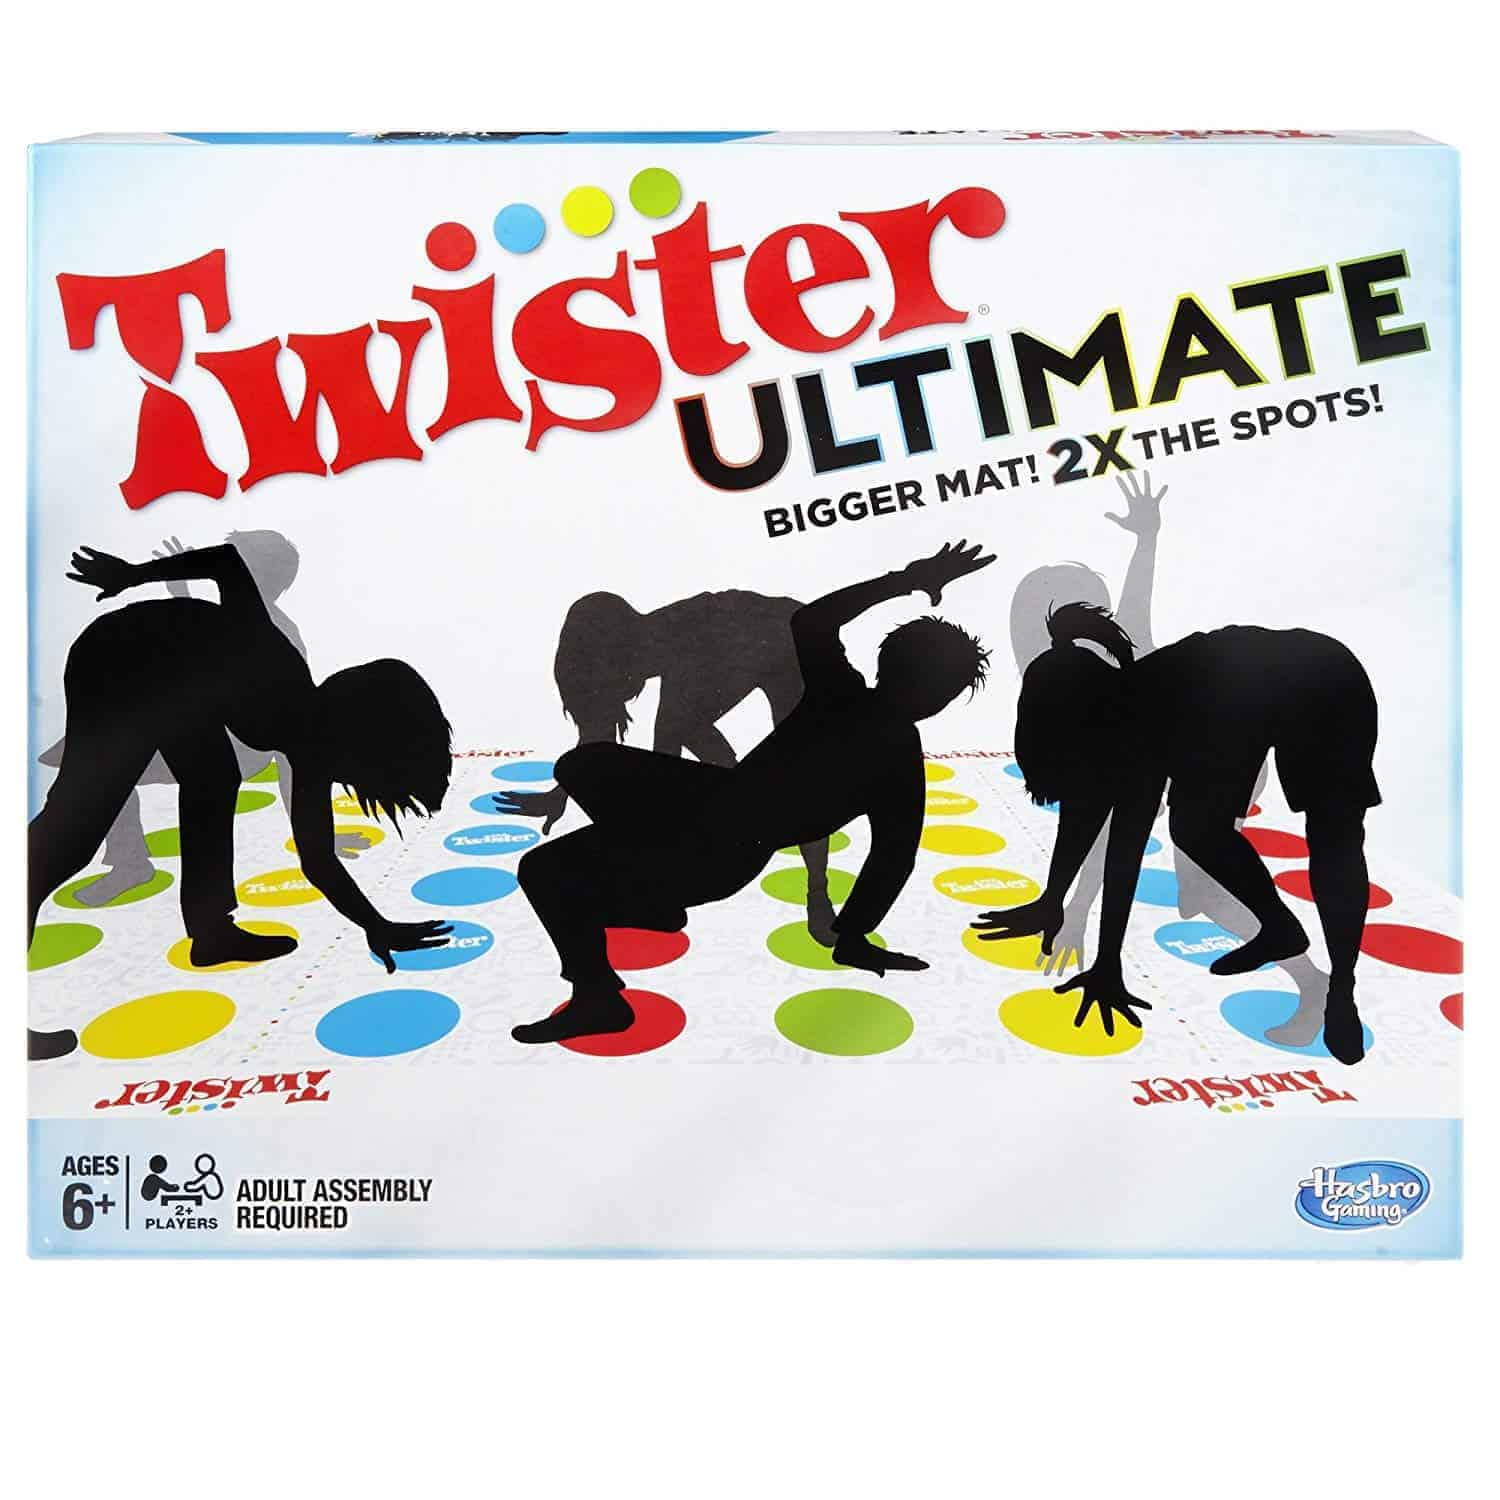 twister ultimate party game family fun | kimschob.com